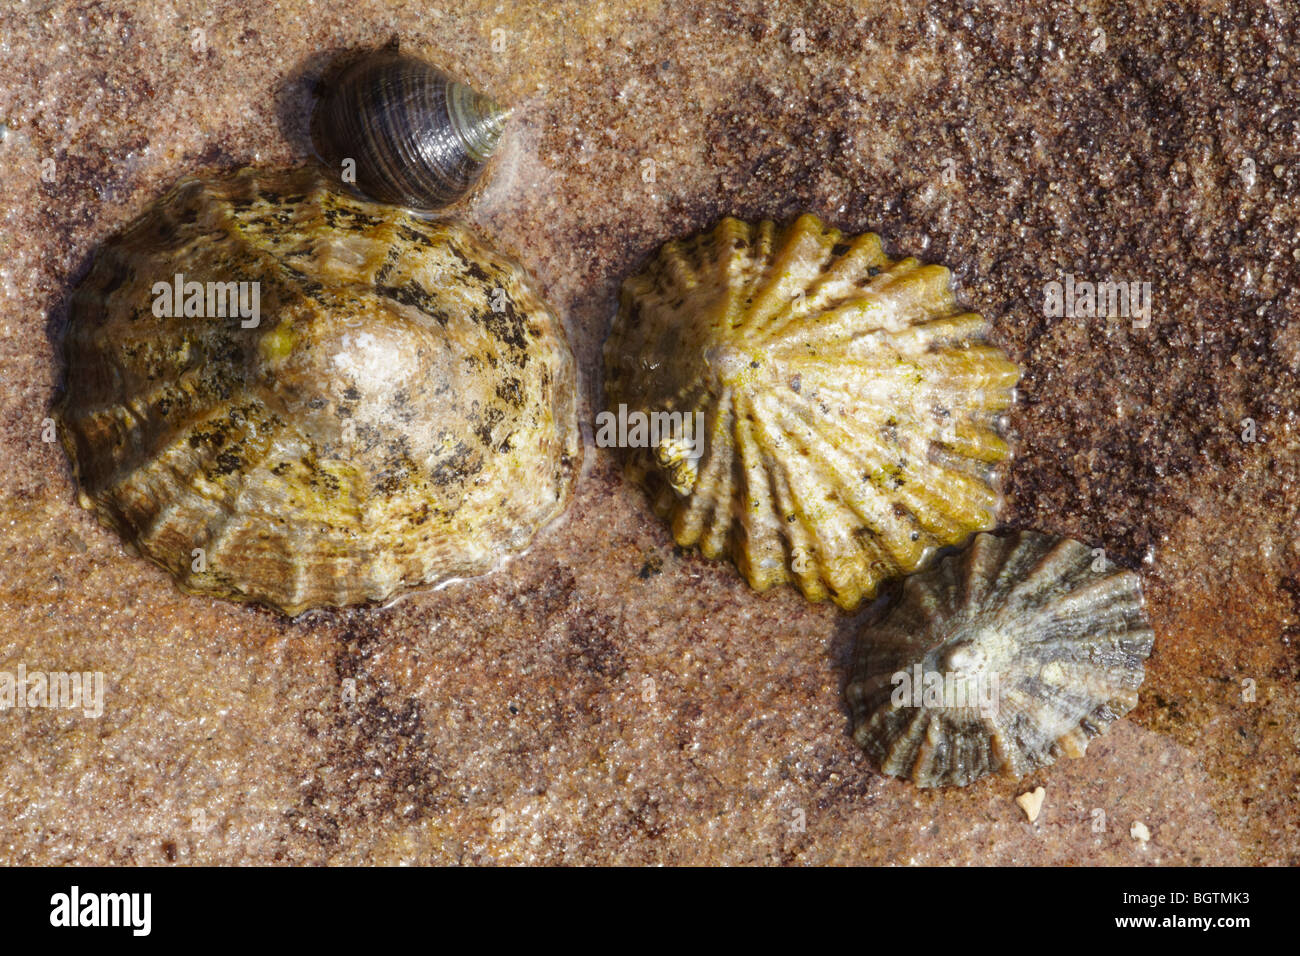 Common limpets (Patella vulgata) and edible periwinkle (Littorina littorea), Northumberland, England, United Kingdom Stock Photo